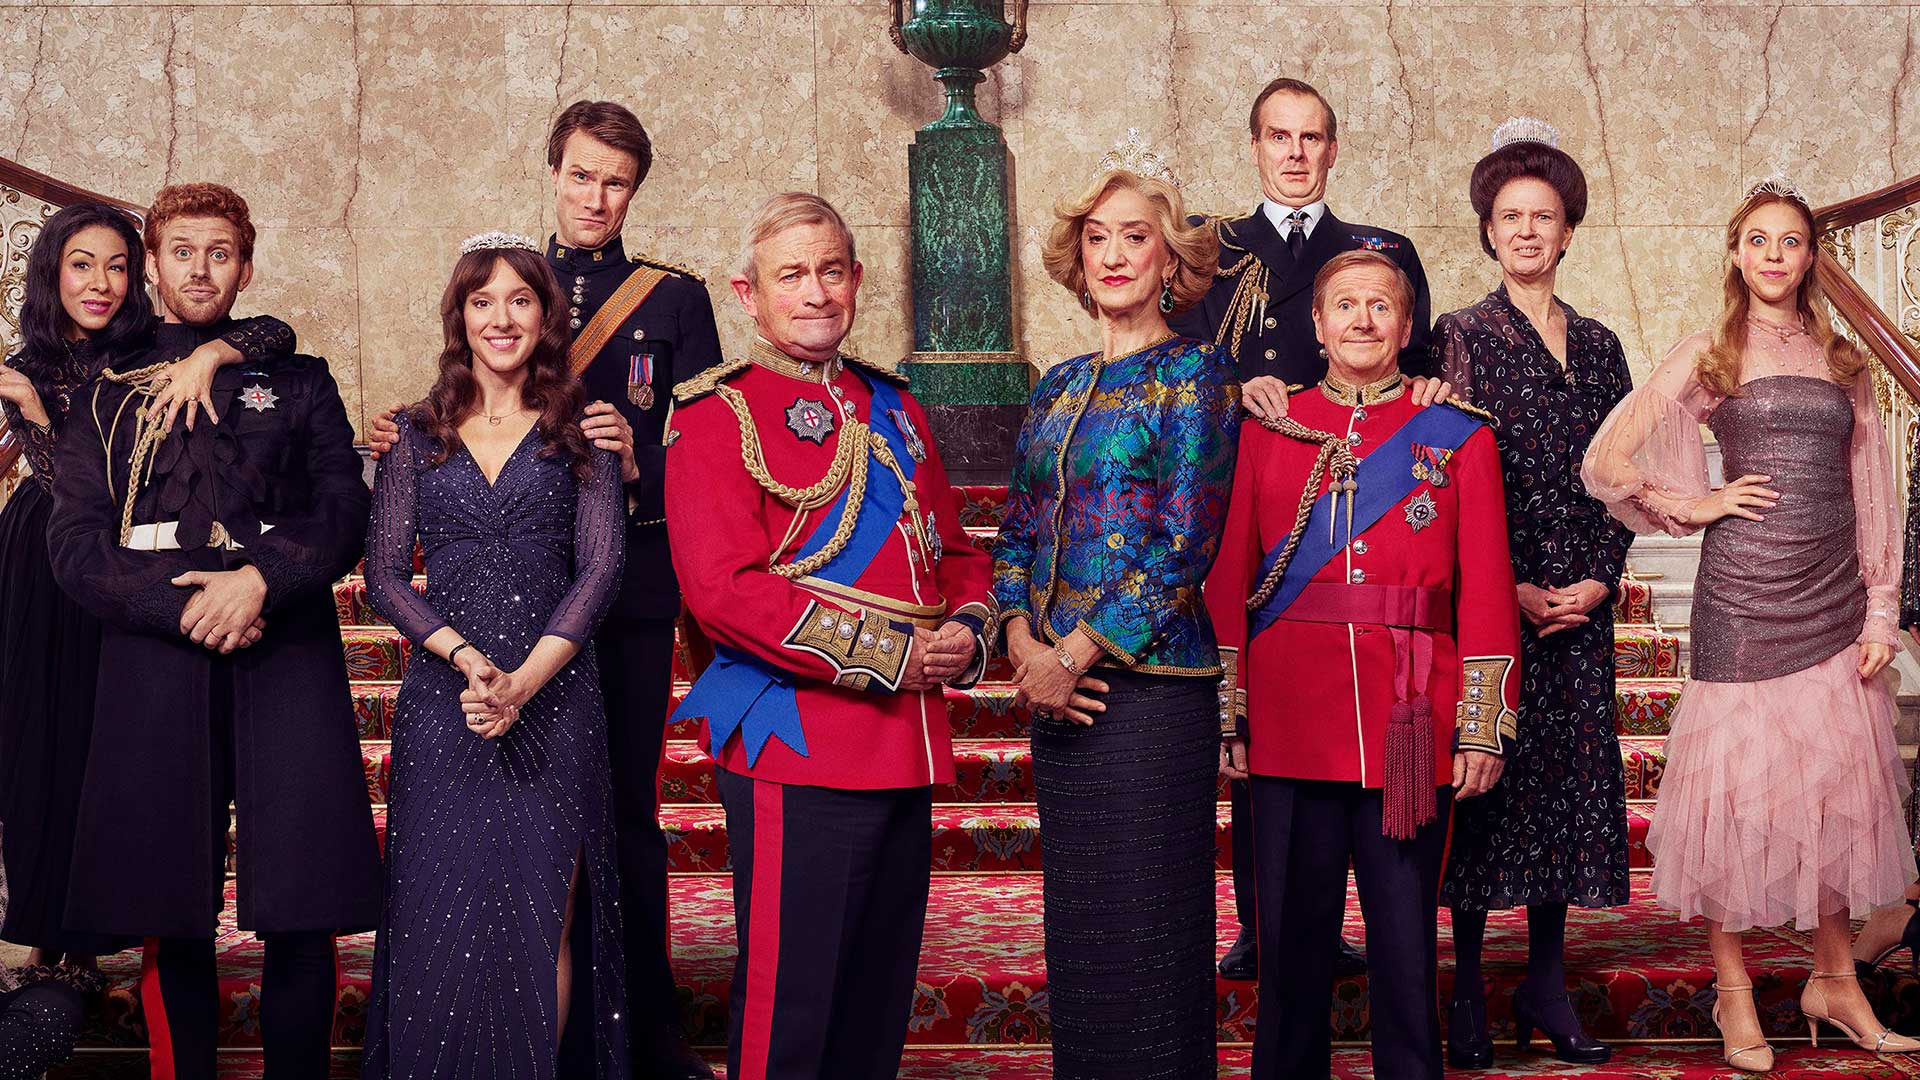 shows on the royal family